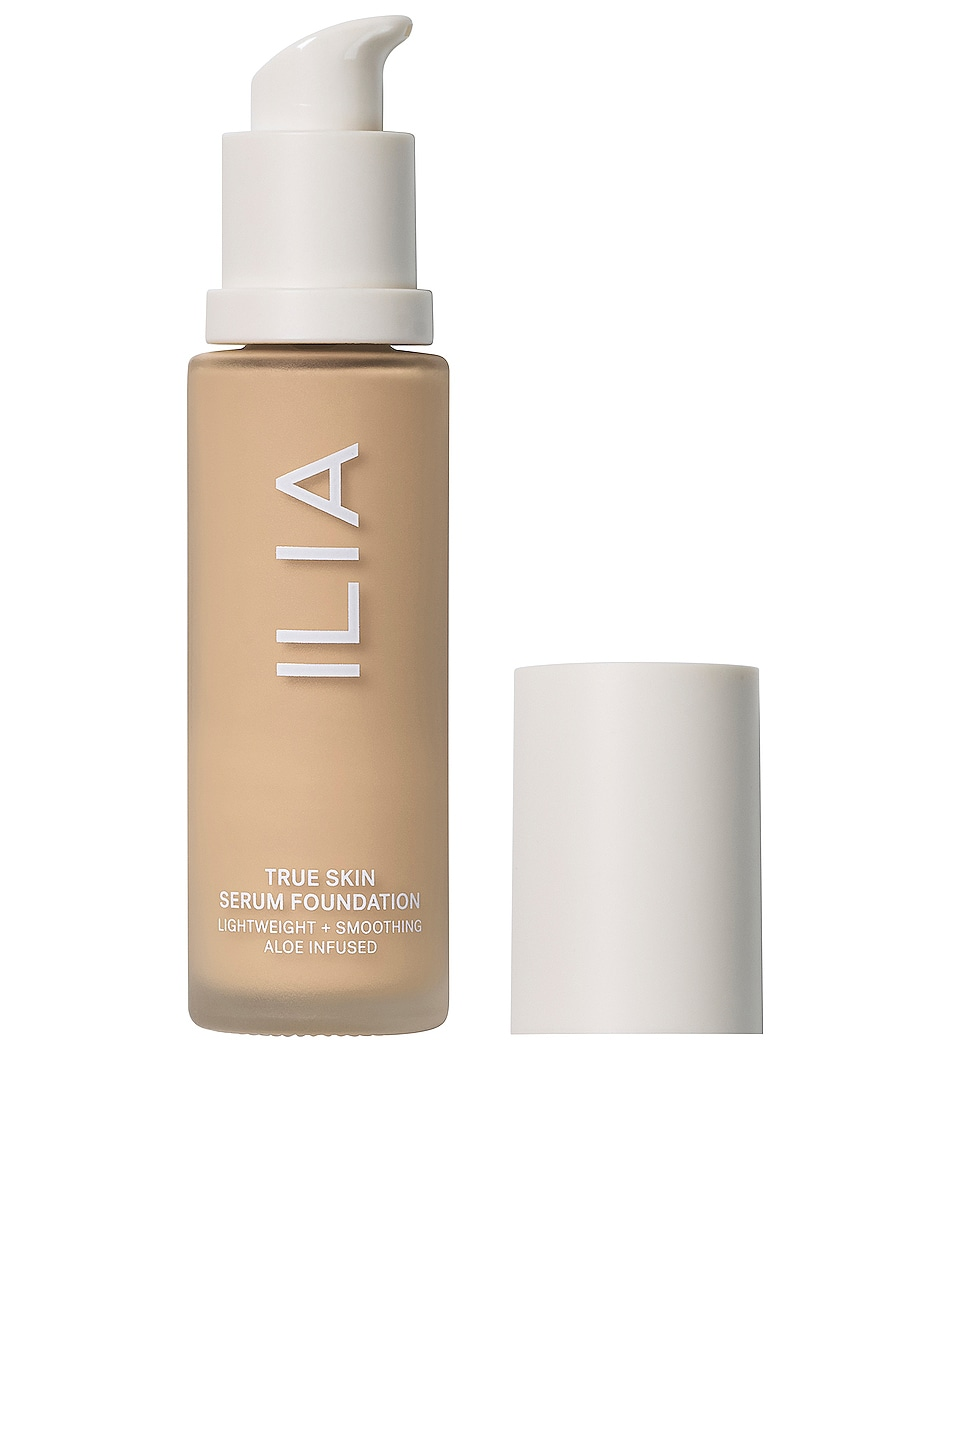 Ilia True Skin Serum Foundation in Corsica